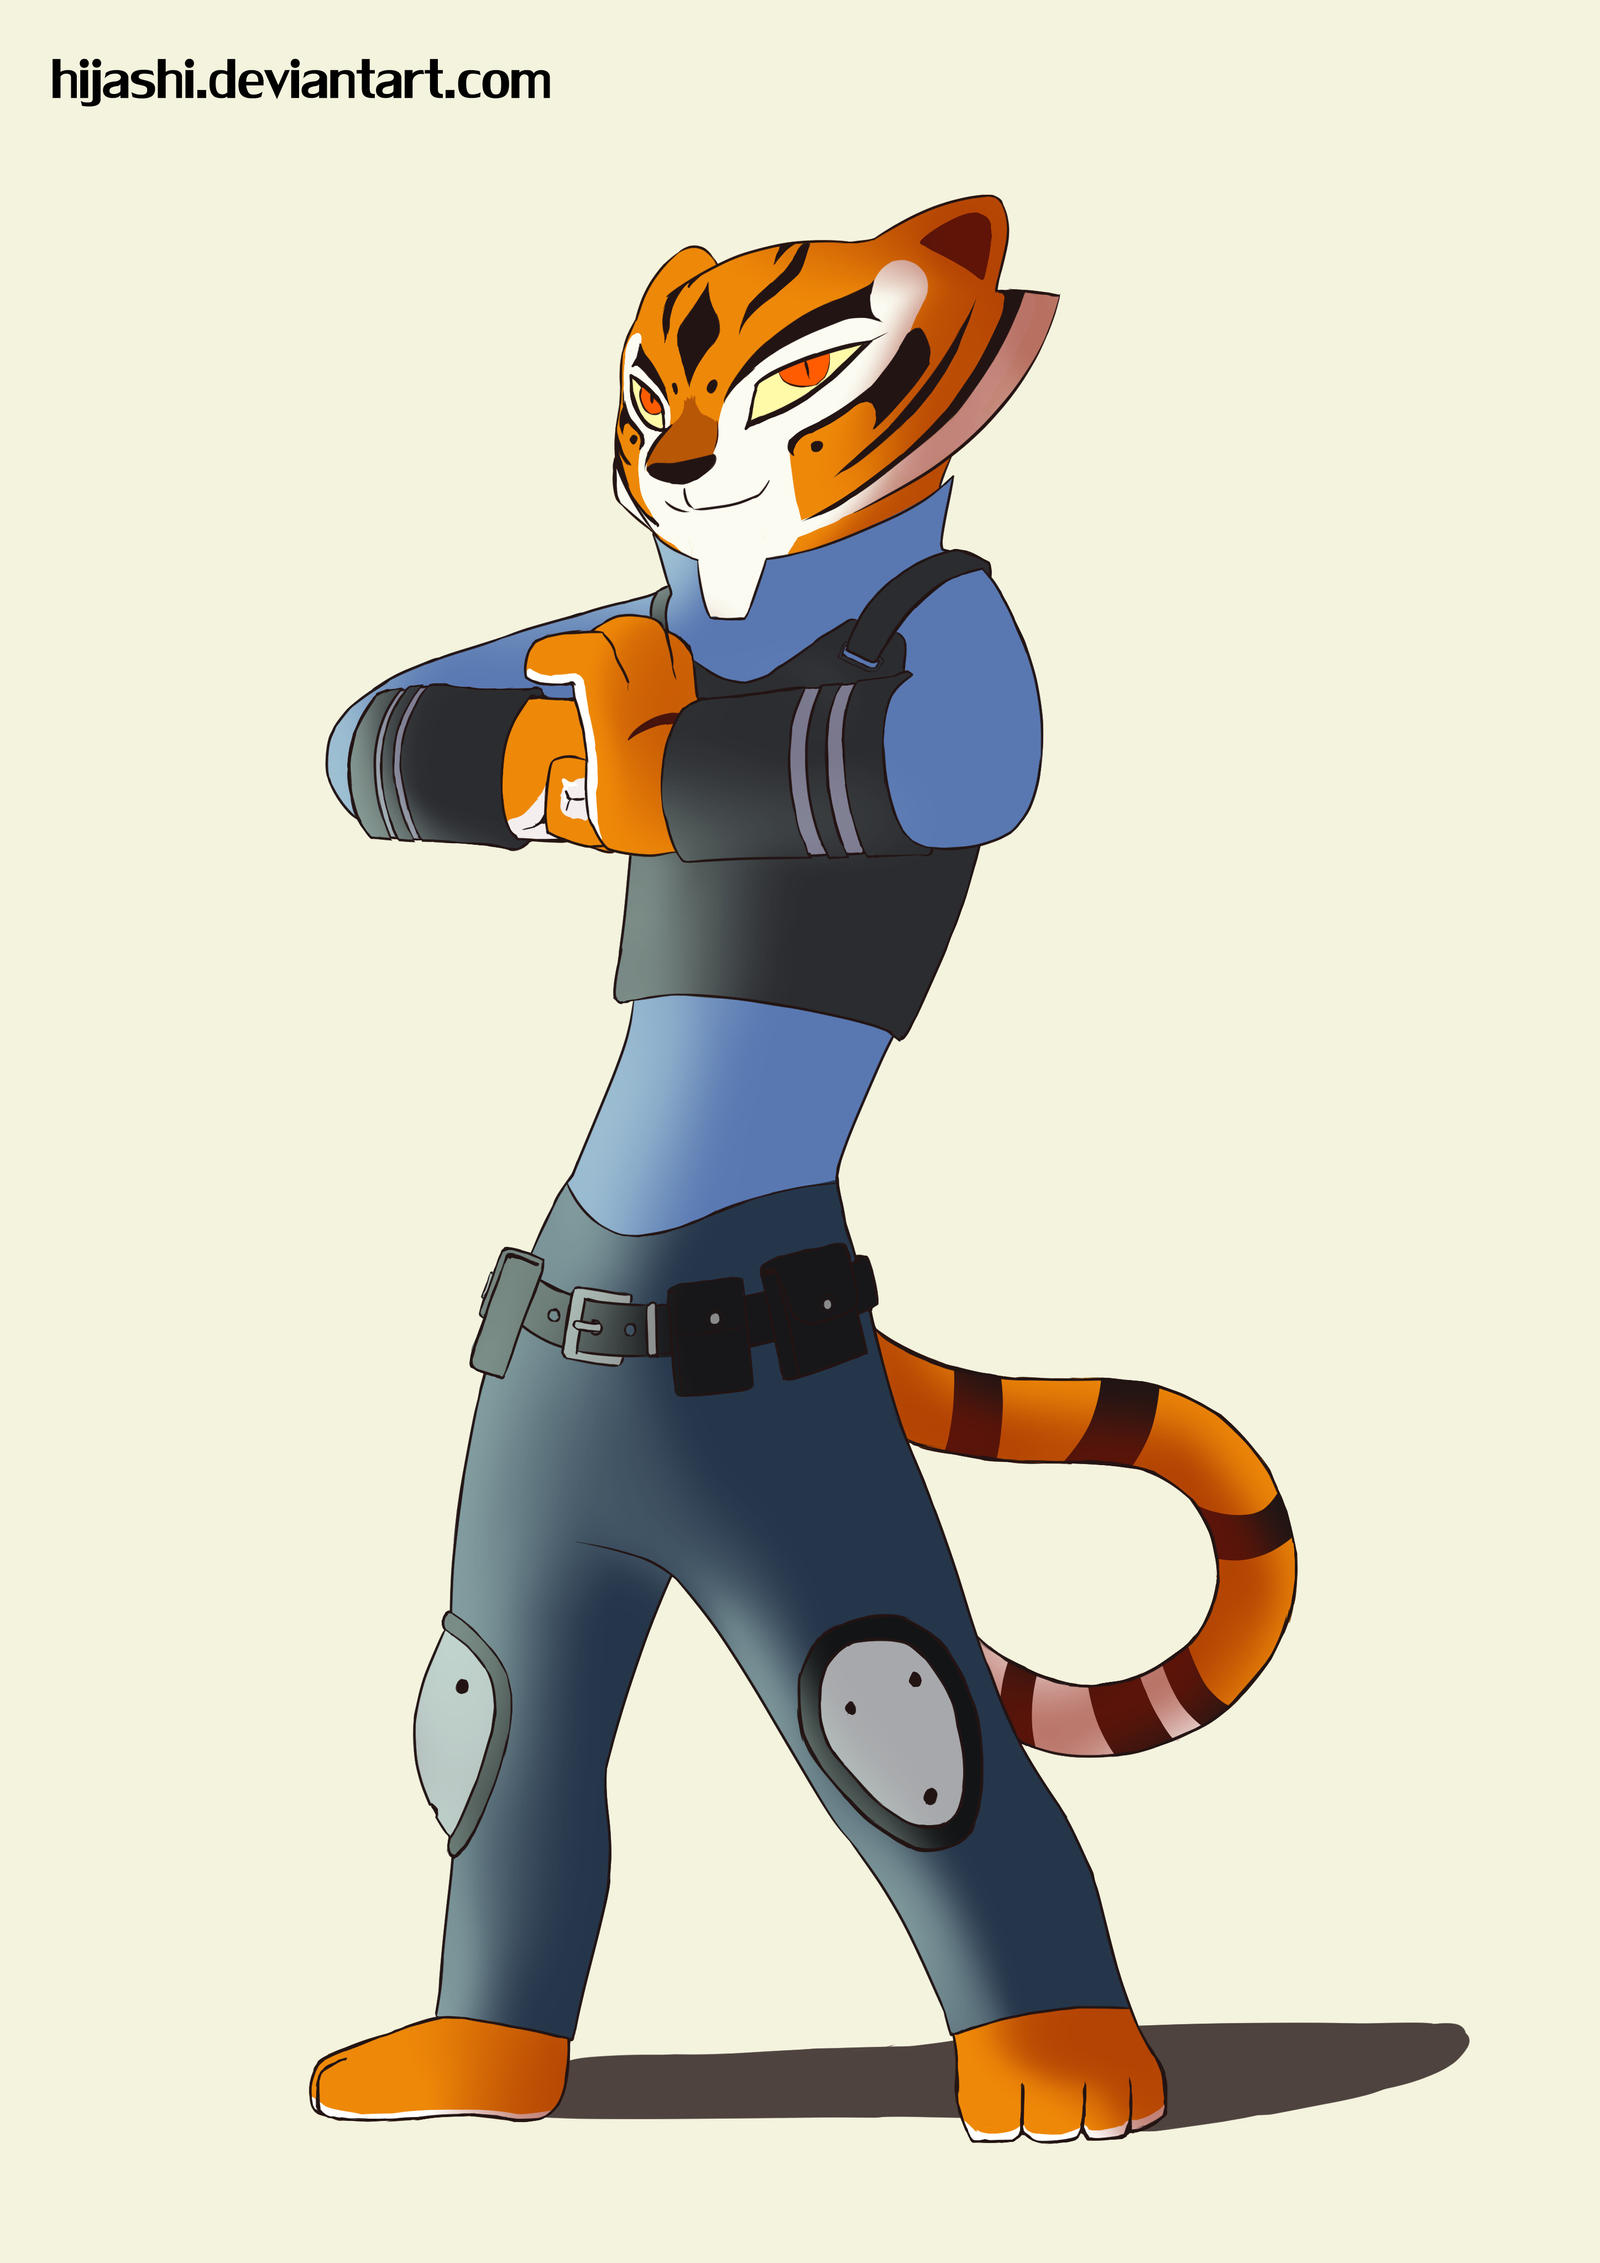 kung fu panda in zootopia tigress by hijashi on deviantart